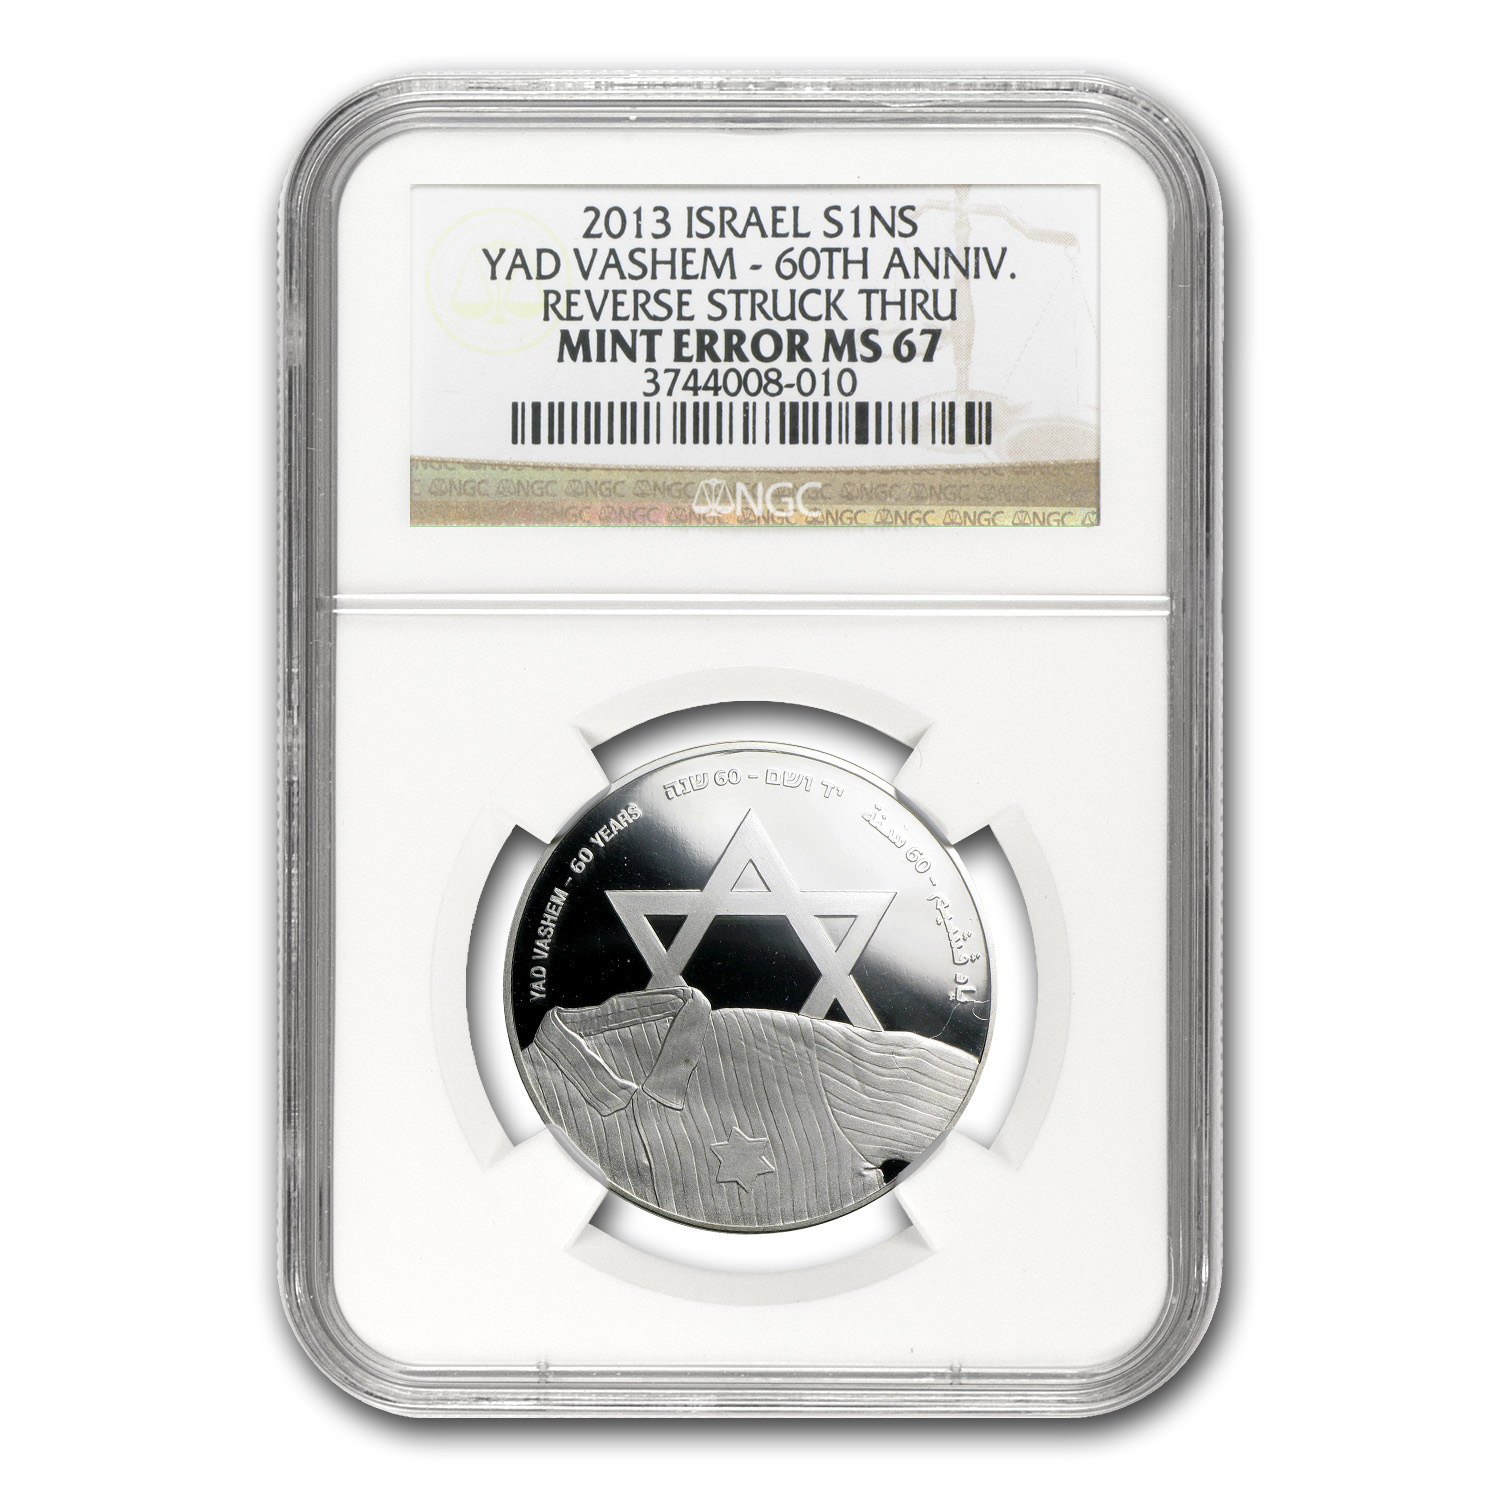 2013 Israel Yad Vashem Proof-Like Silver 1 NIS Coin Error NGC